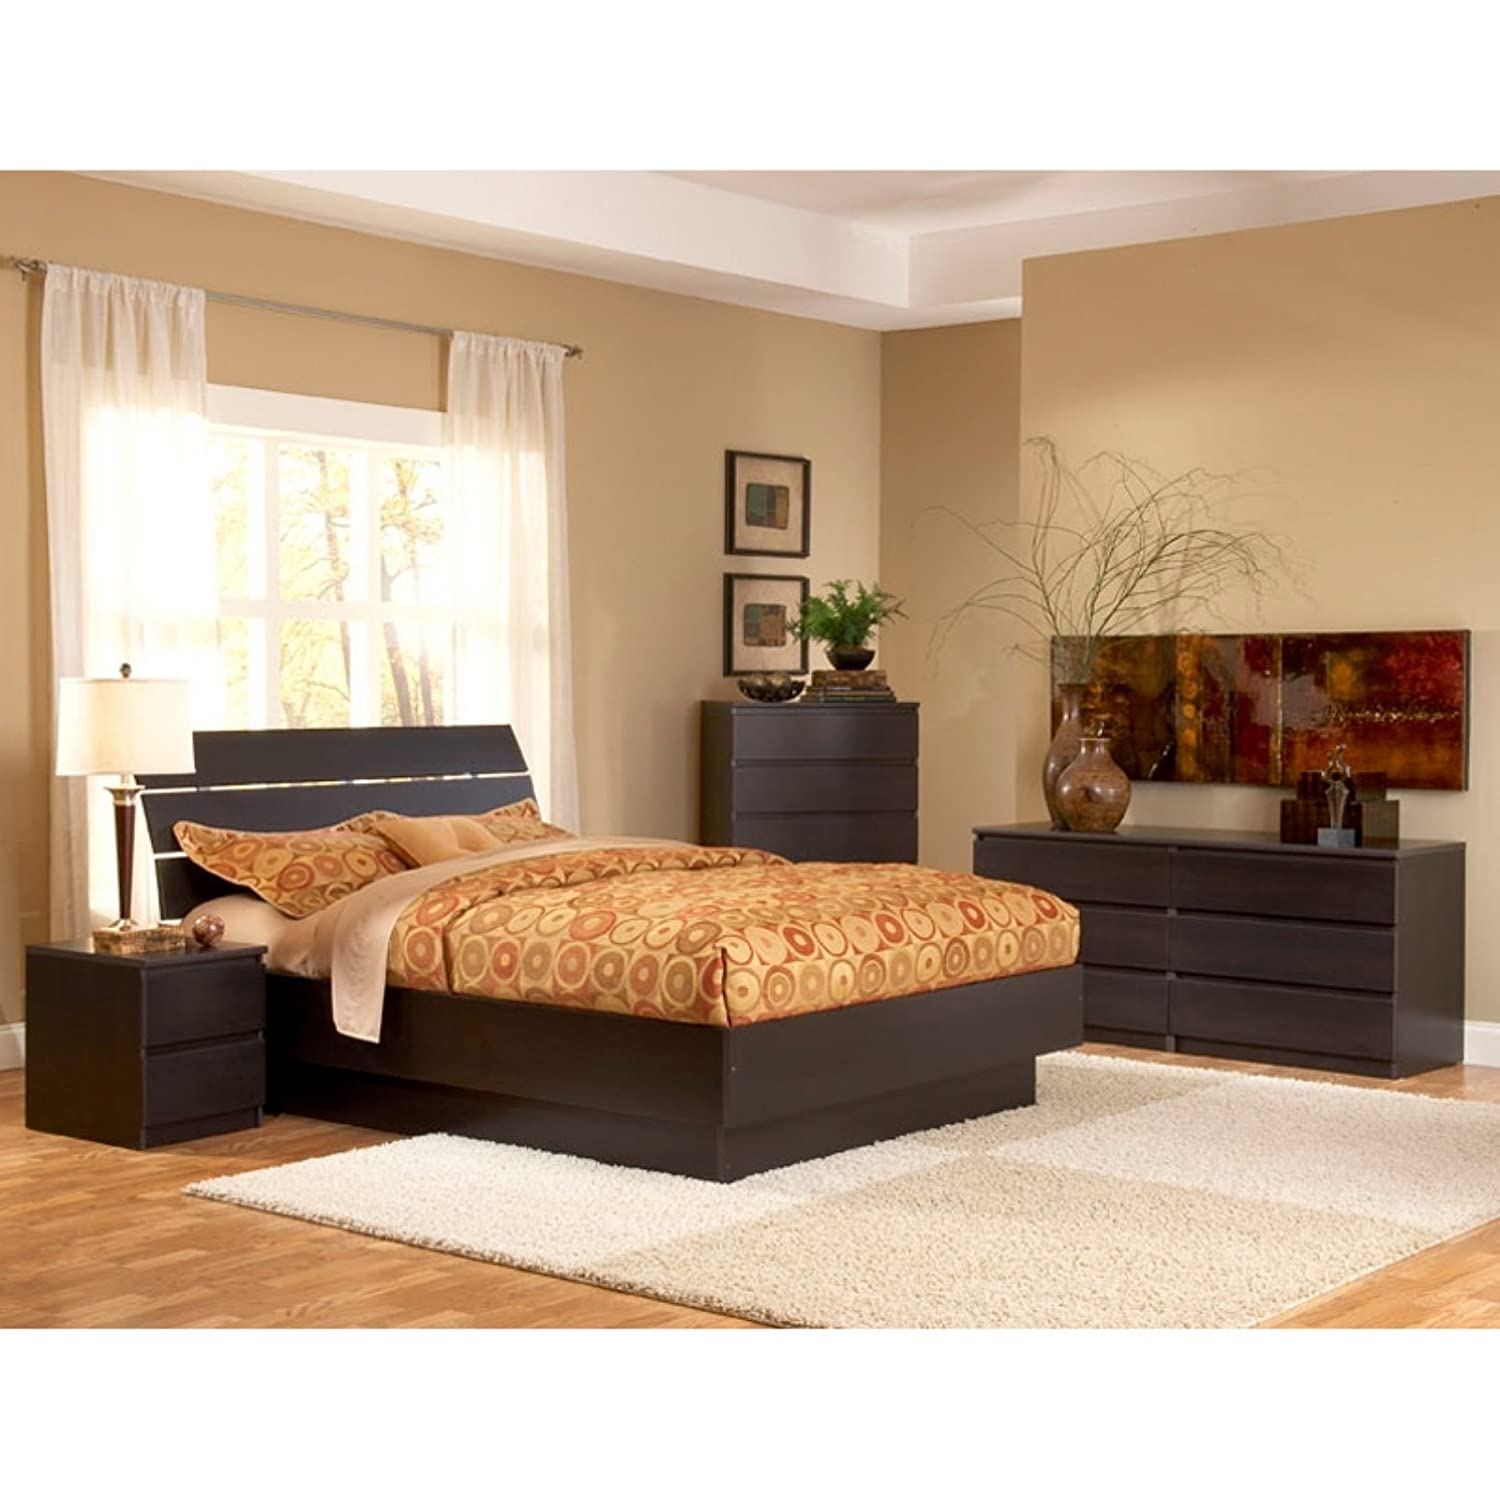 Amazon Tvilum Scottsdale Platform Bed in Coffee Queen